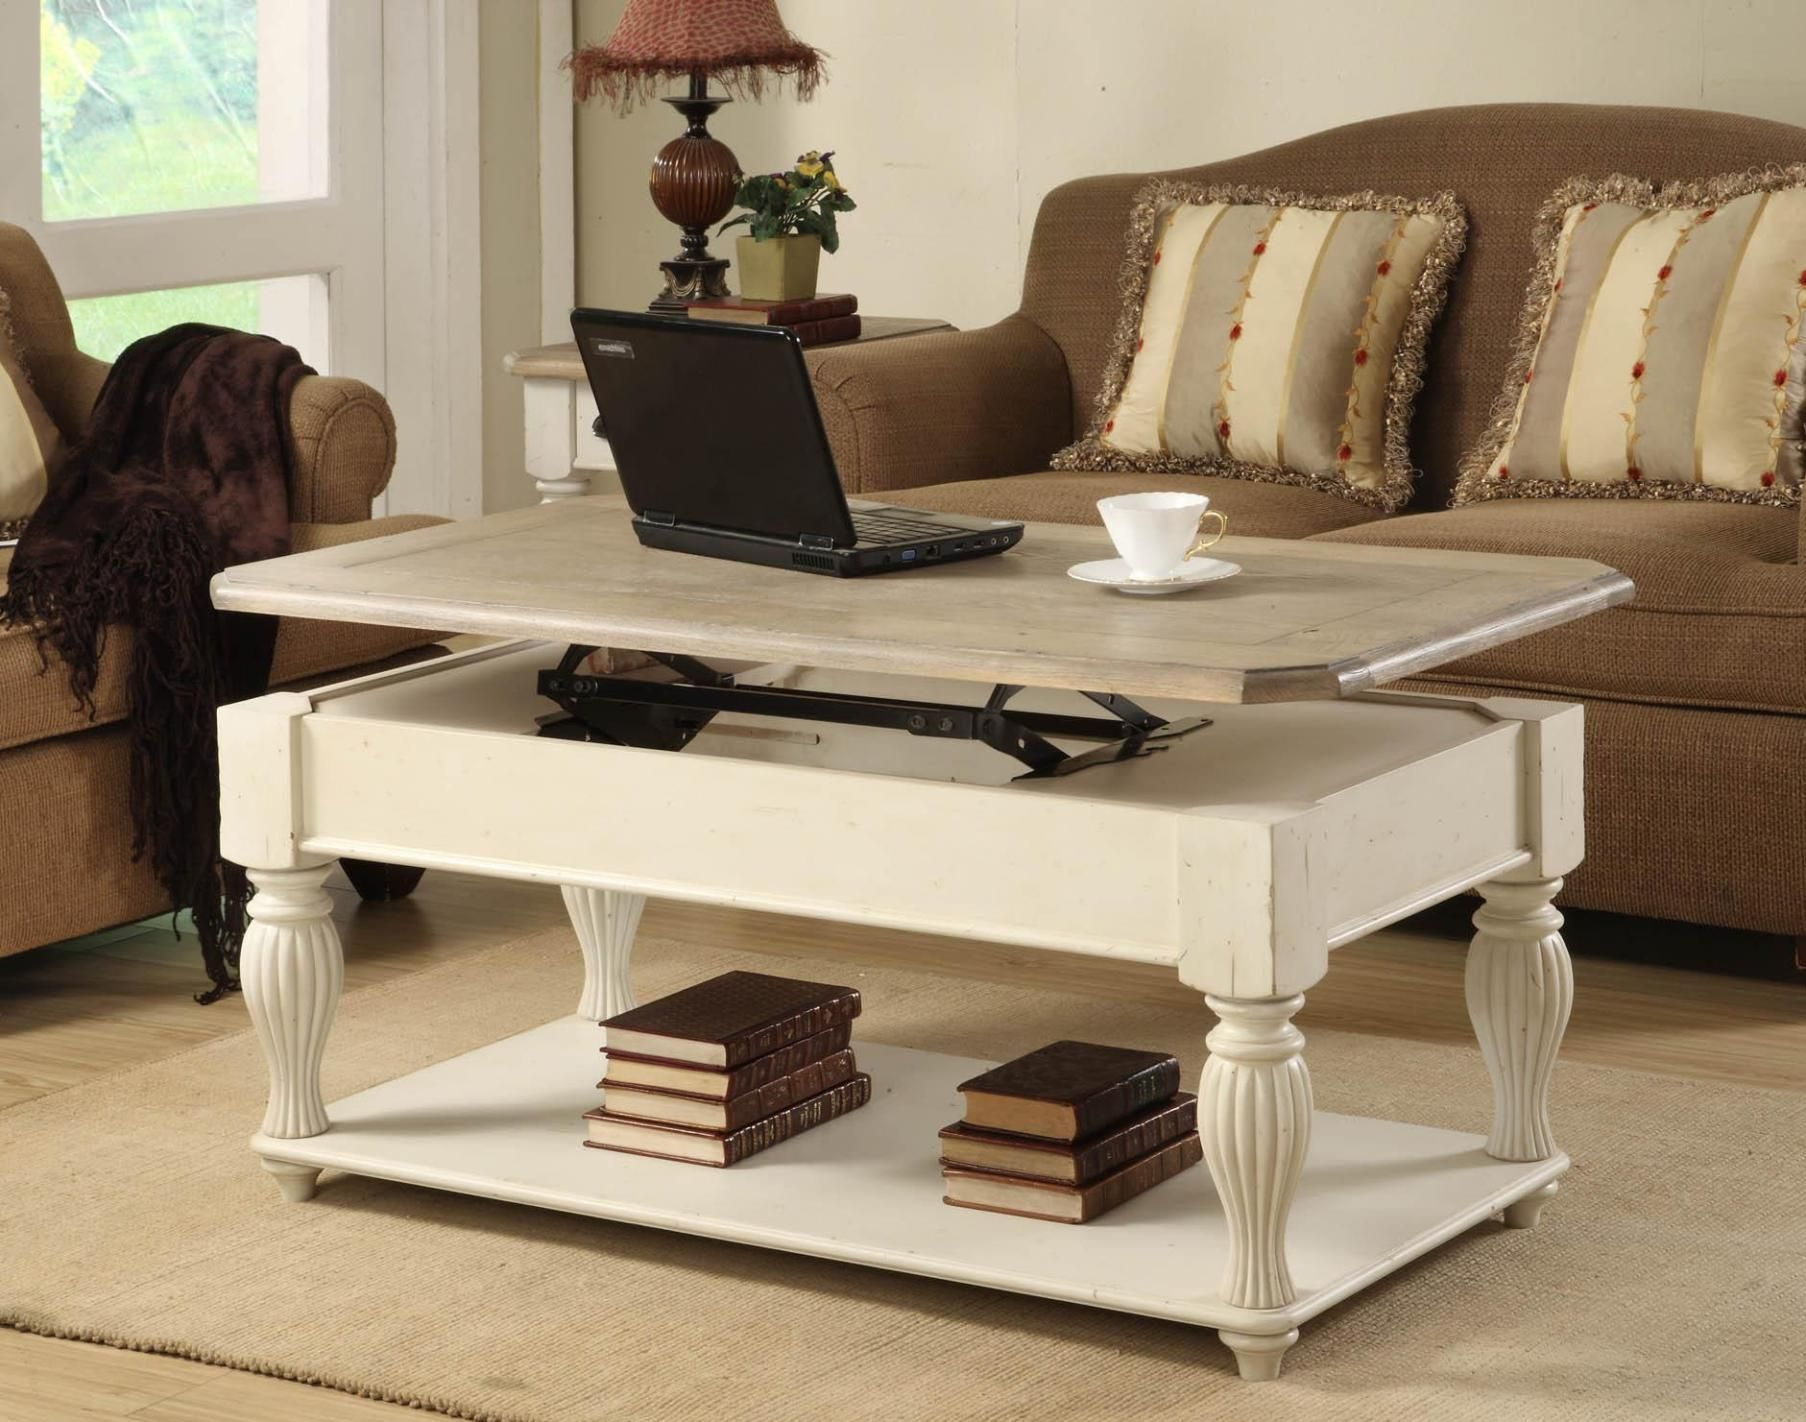 Unique Adjustable Coffee Table for Modern Living Room Furniture